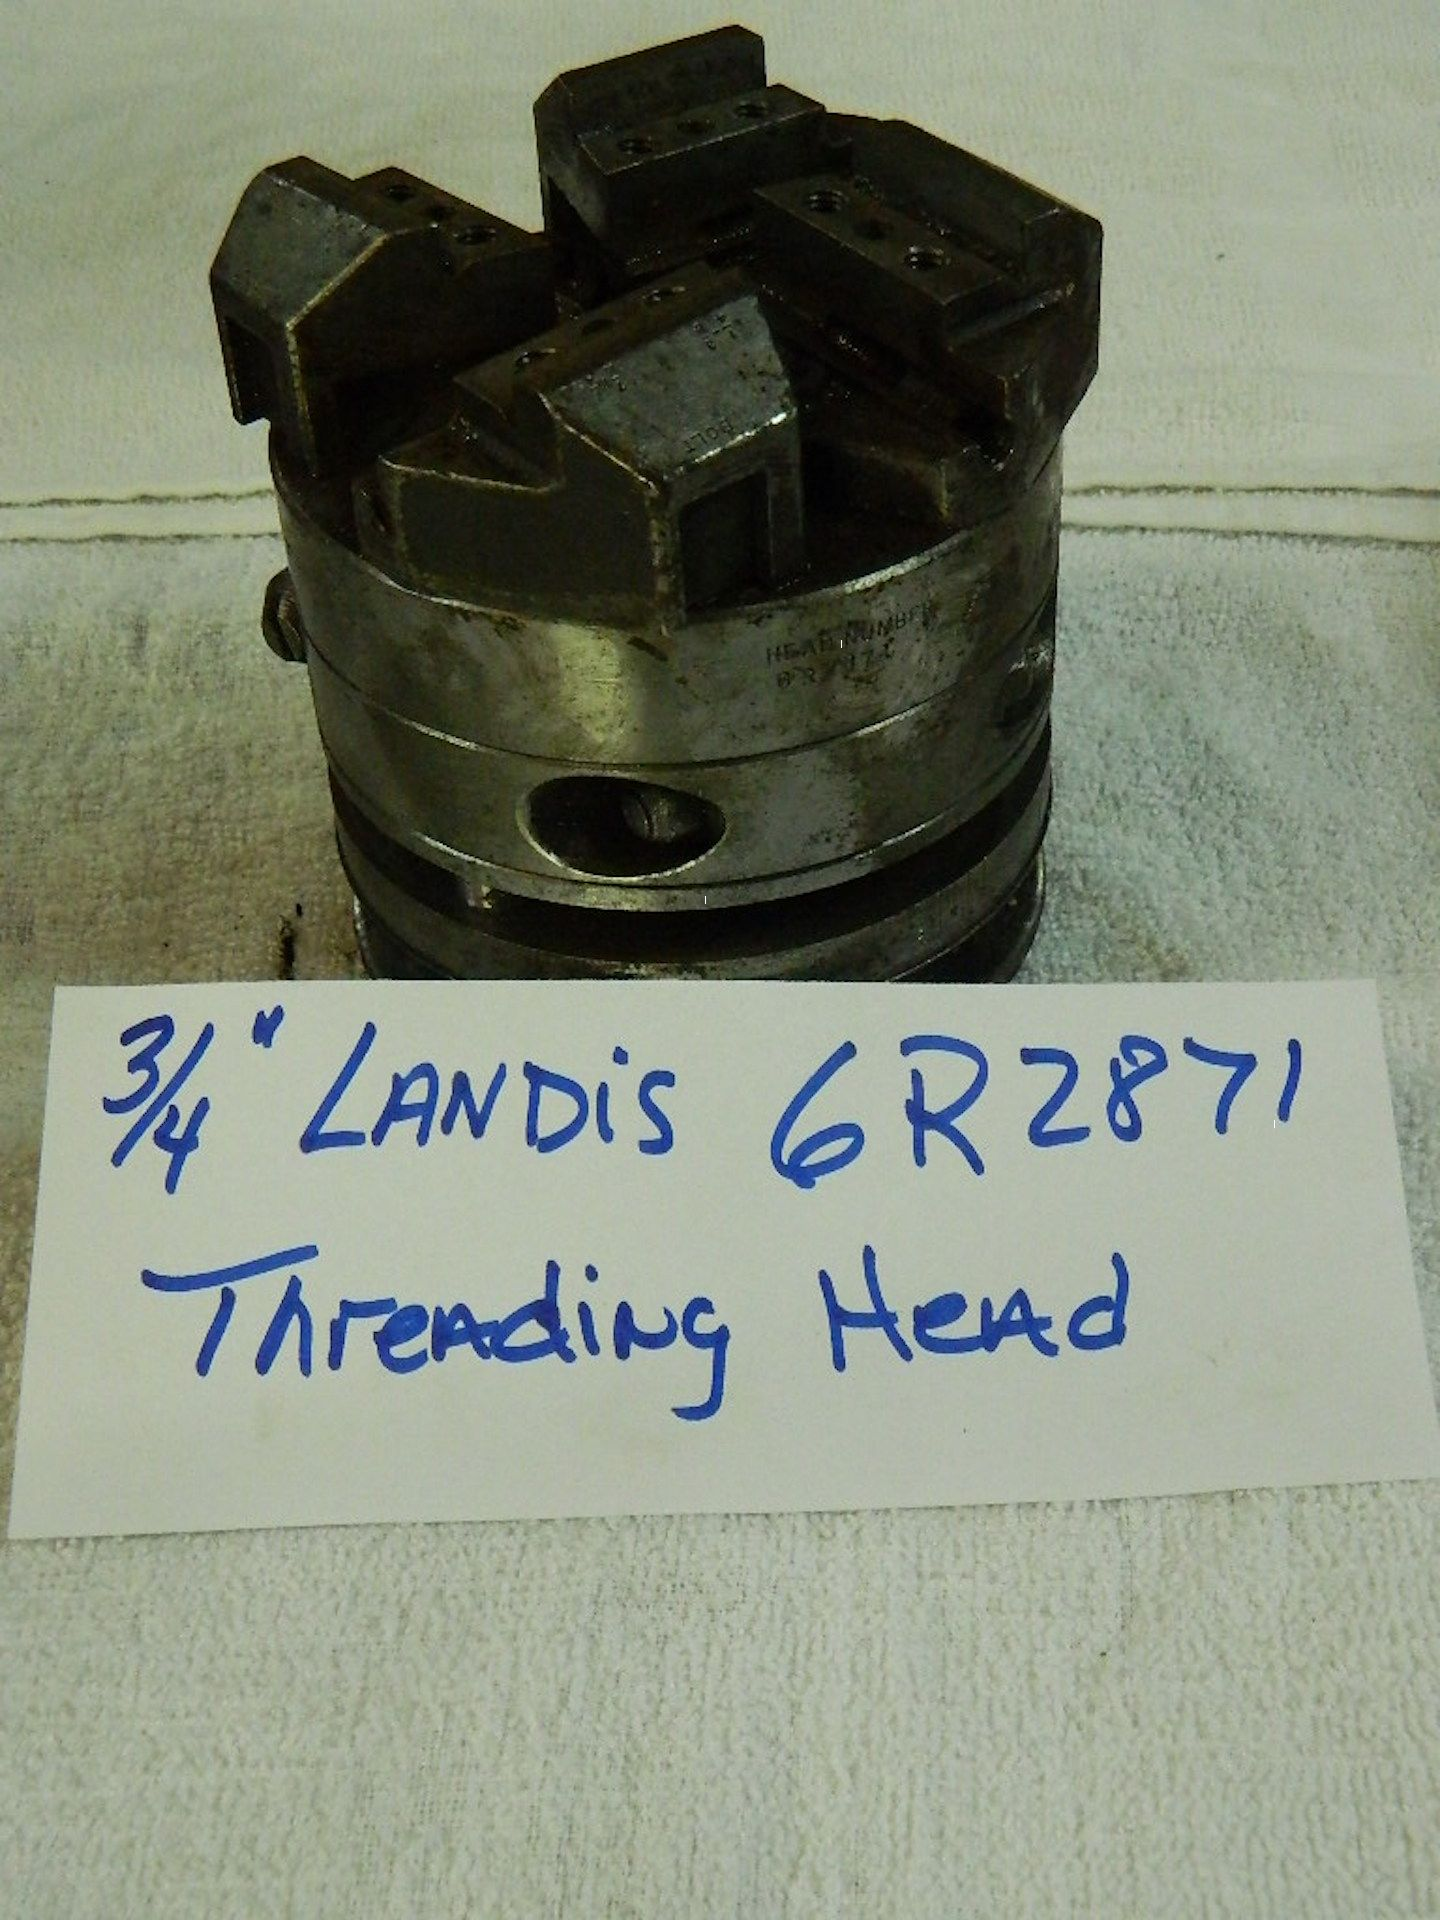 "3/4"" LANDIS BOLT THREADING HEAD, SER#6R2871"